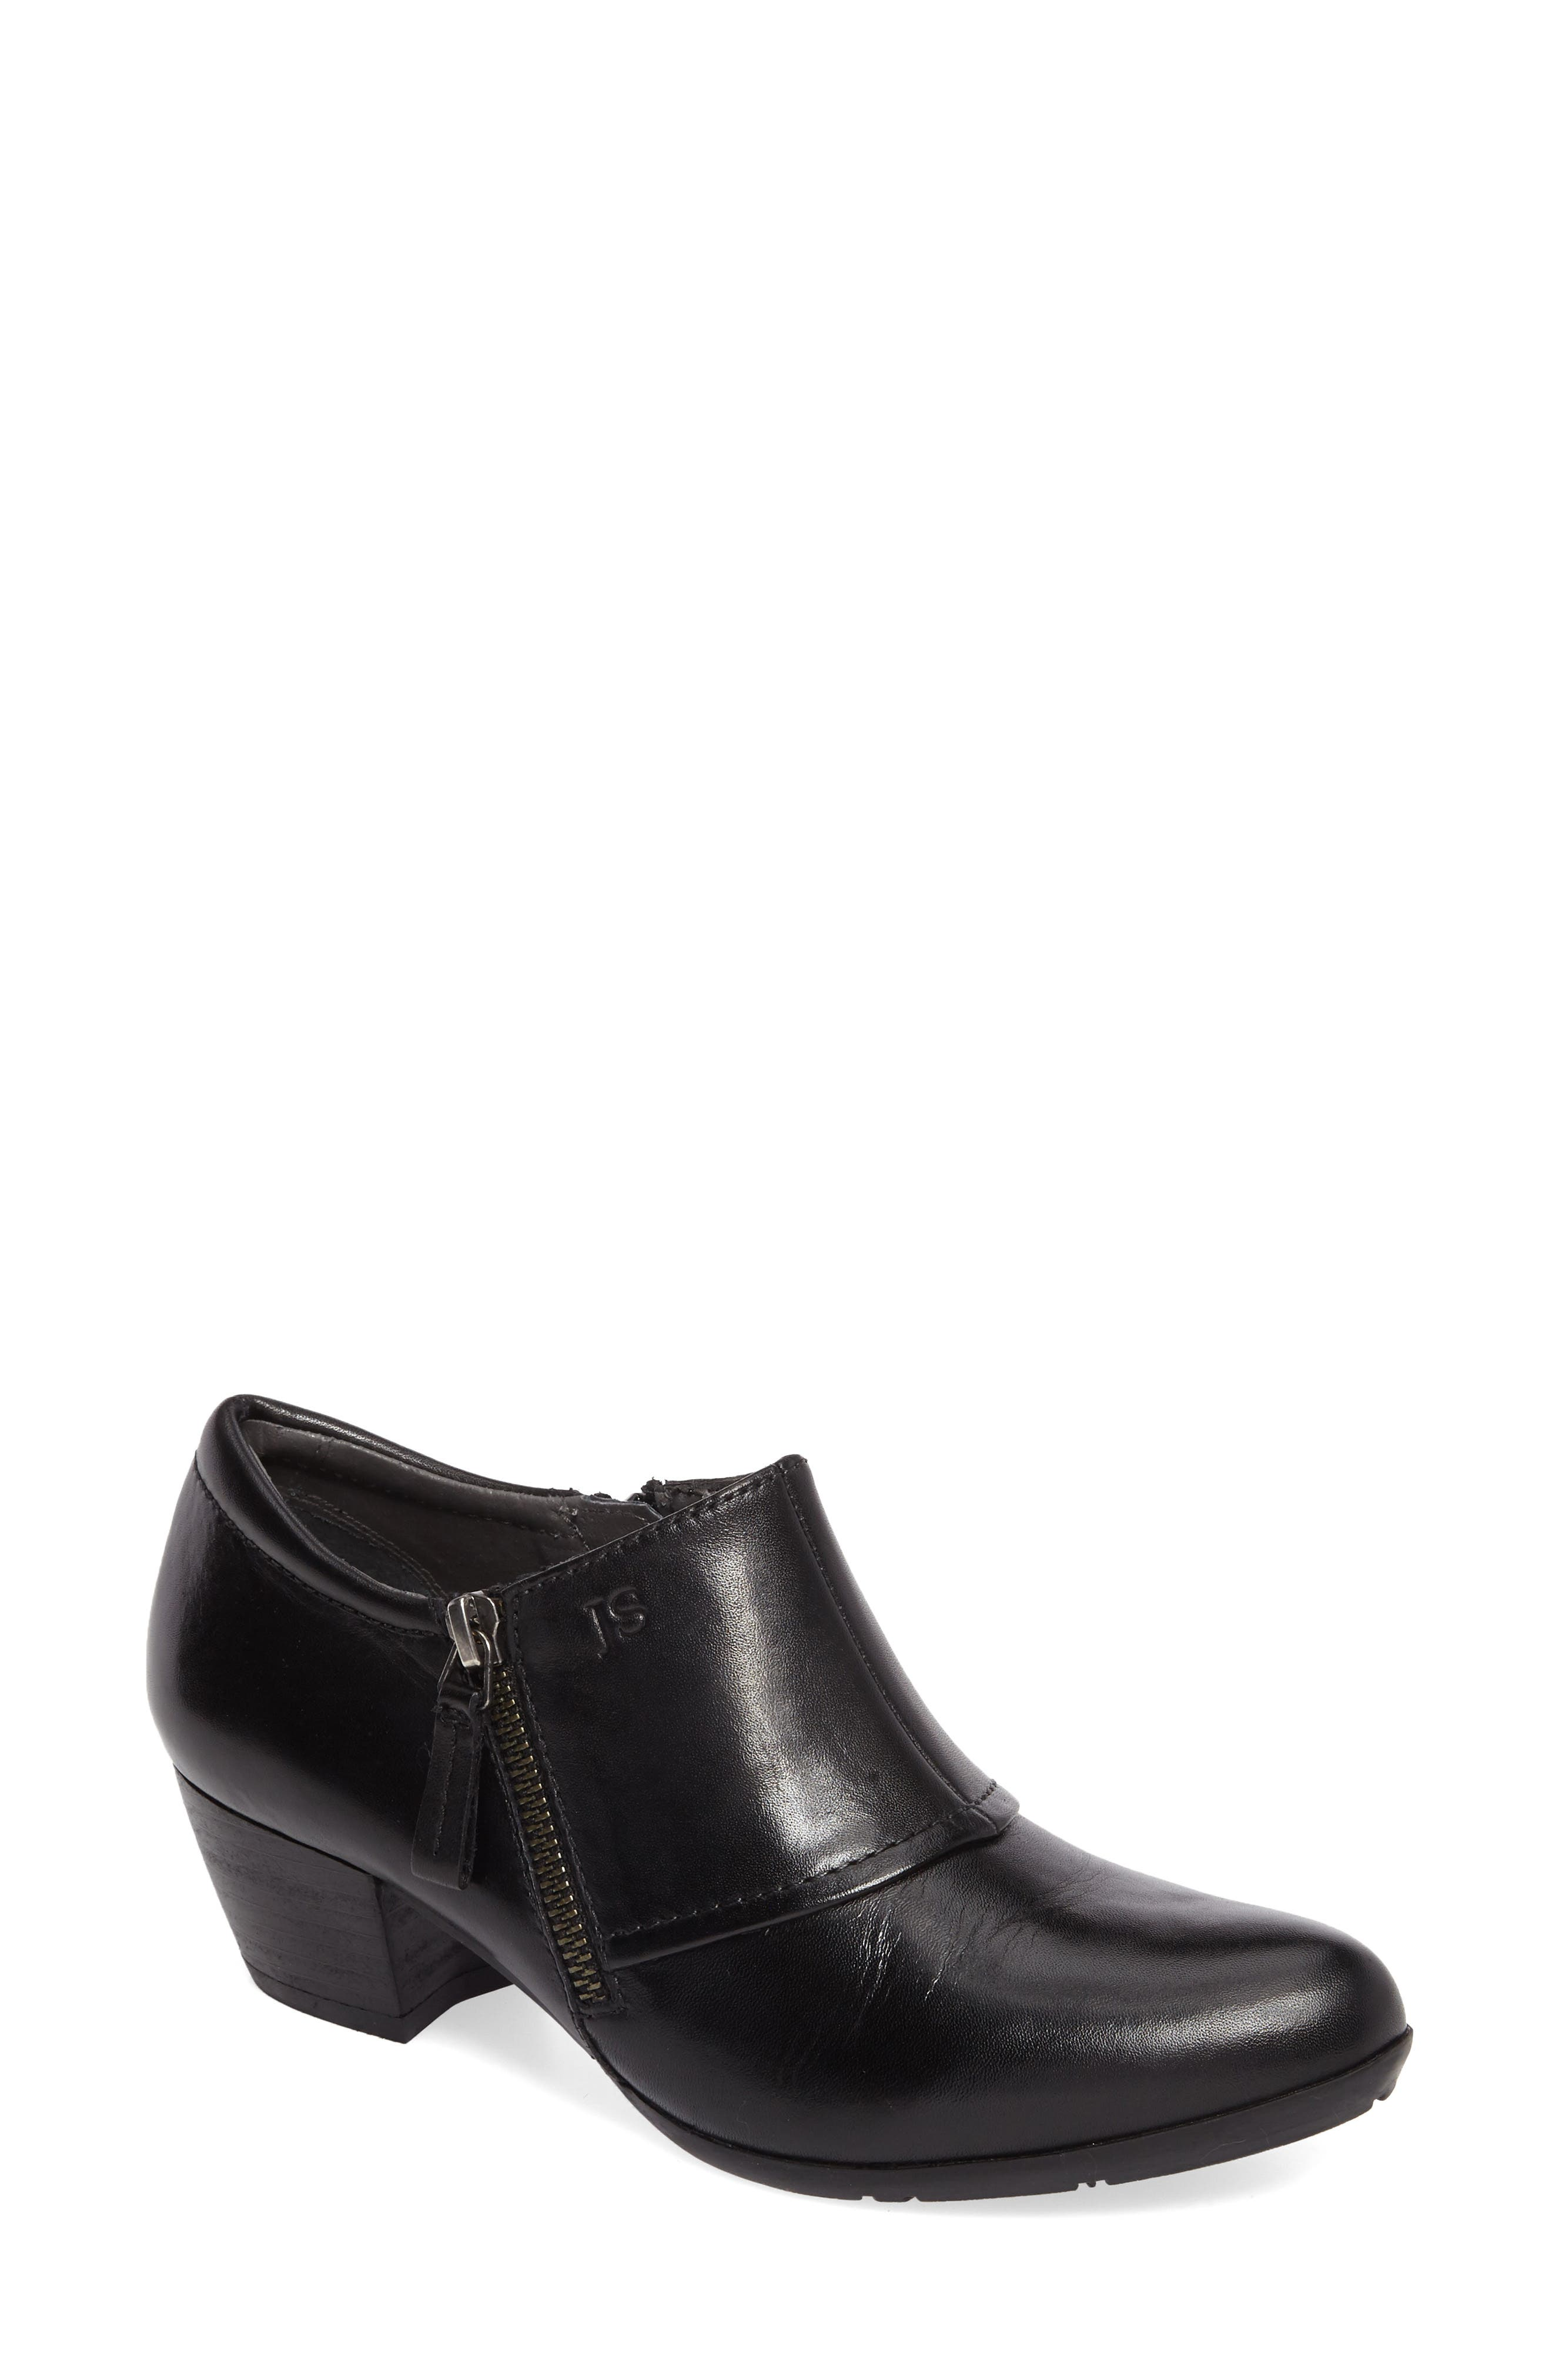 Sue 03 Bootie,                         Main,                         color, Black Leather